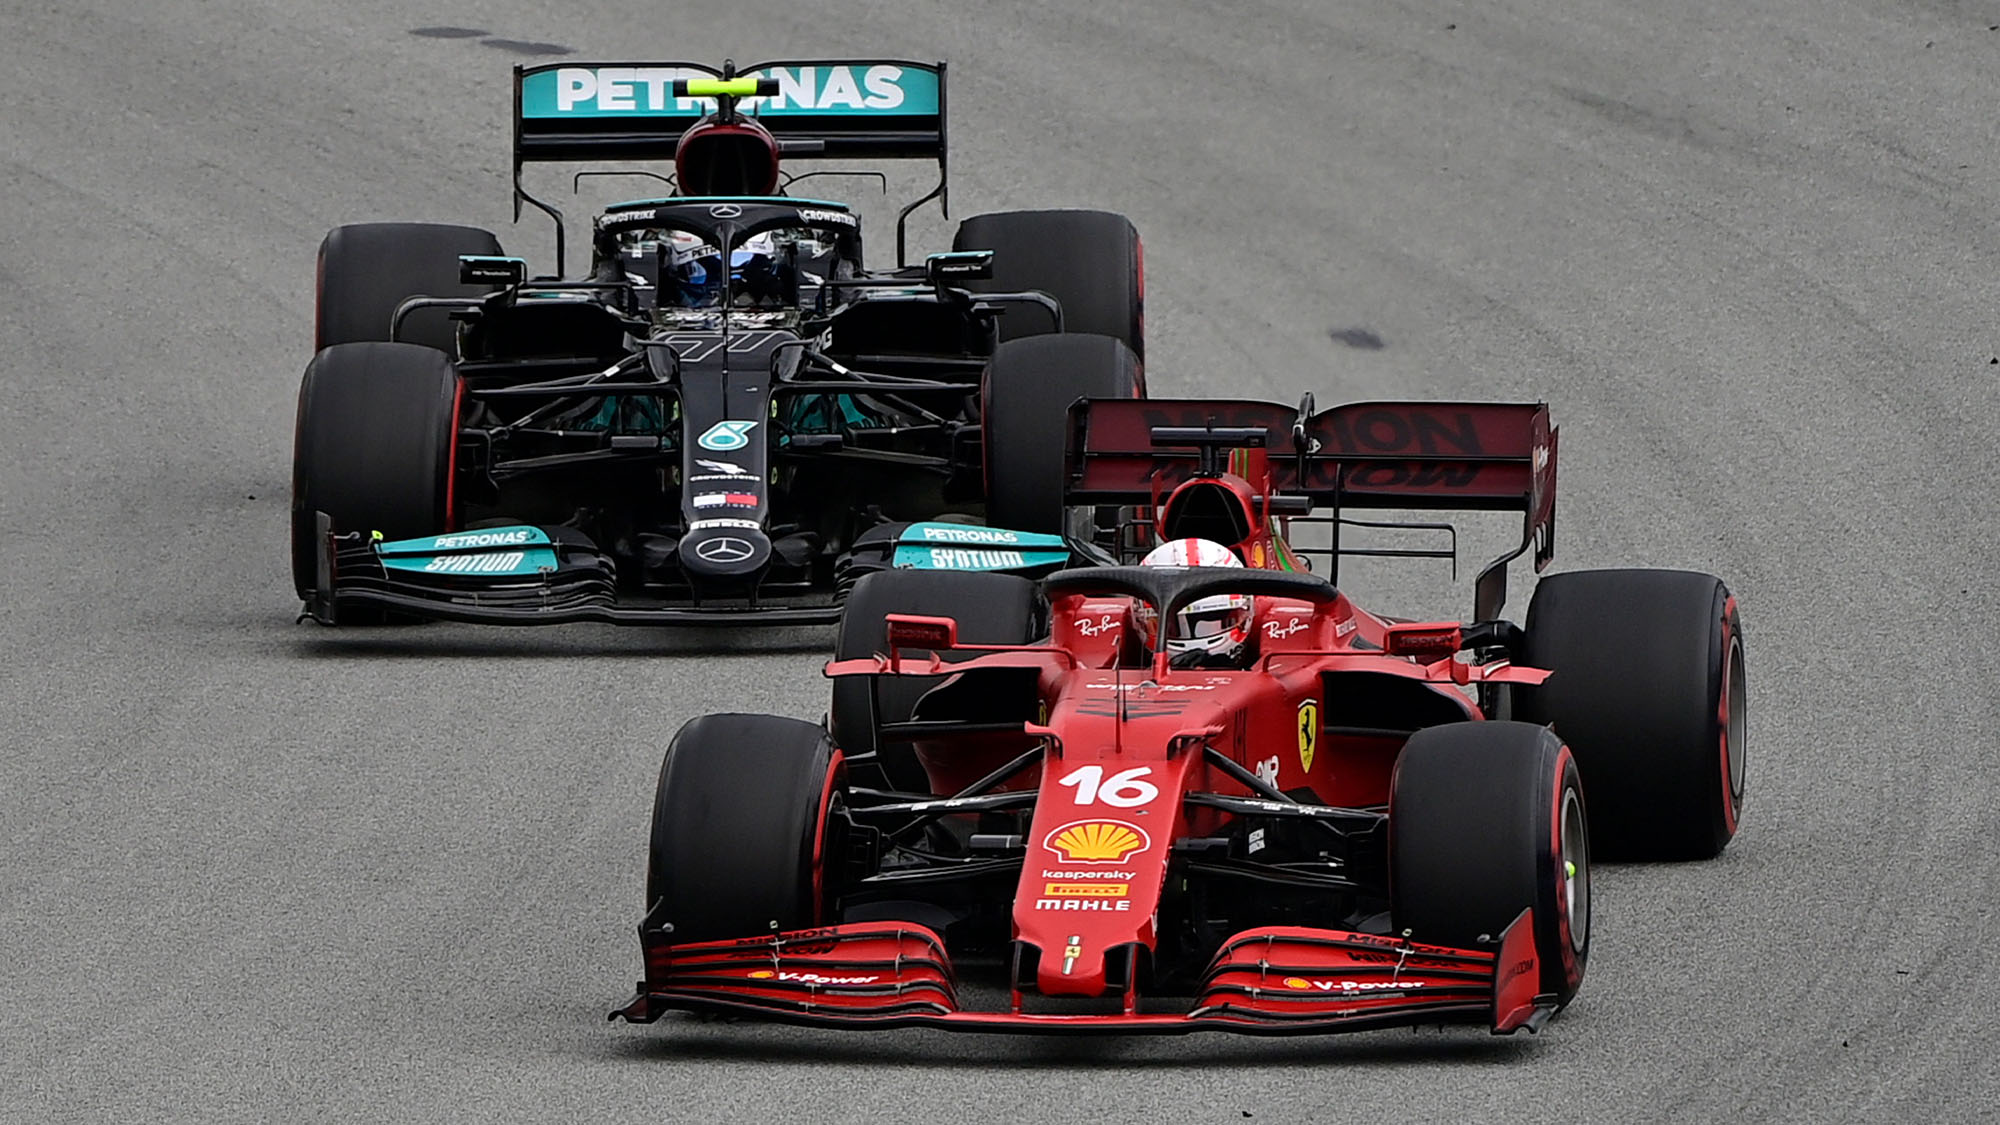 Ferrari's Monegasque driver Charles Leclerc drives ahead of Mercedes' Finnish driver Valtteri Bottas during the Spanish Formula One Grand Prix race at the Circuit de Catalunya on May 9, 2021 in Montmelo on the outskirts of Barcelona. (Photo by JAVIER SORIANO / AFP) (Photo by JAVIER SORIANO/AFP via Getty Images)